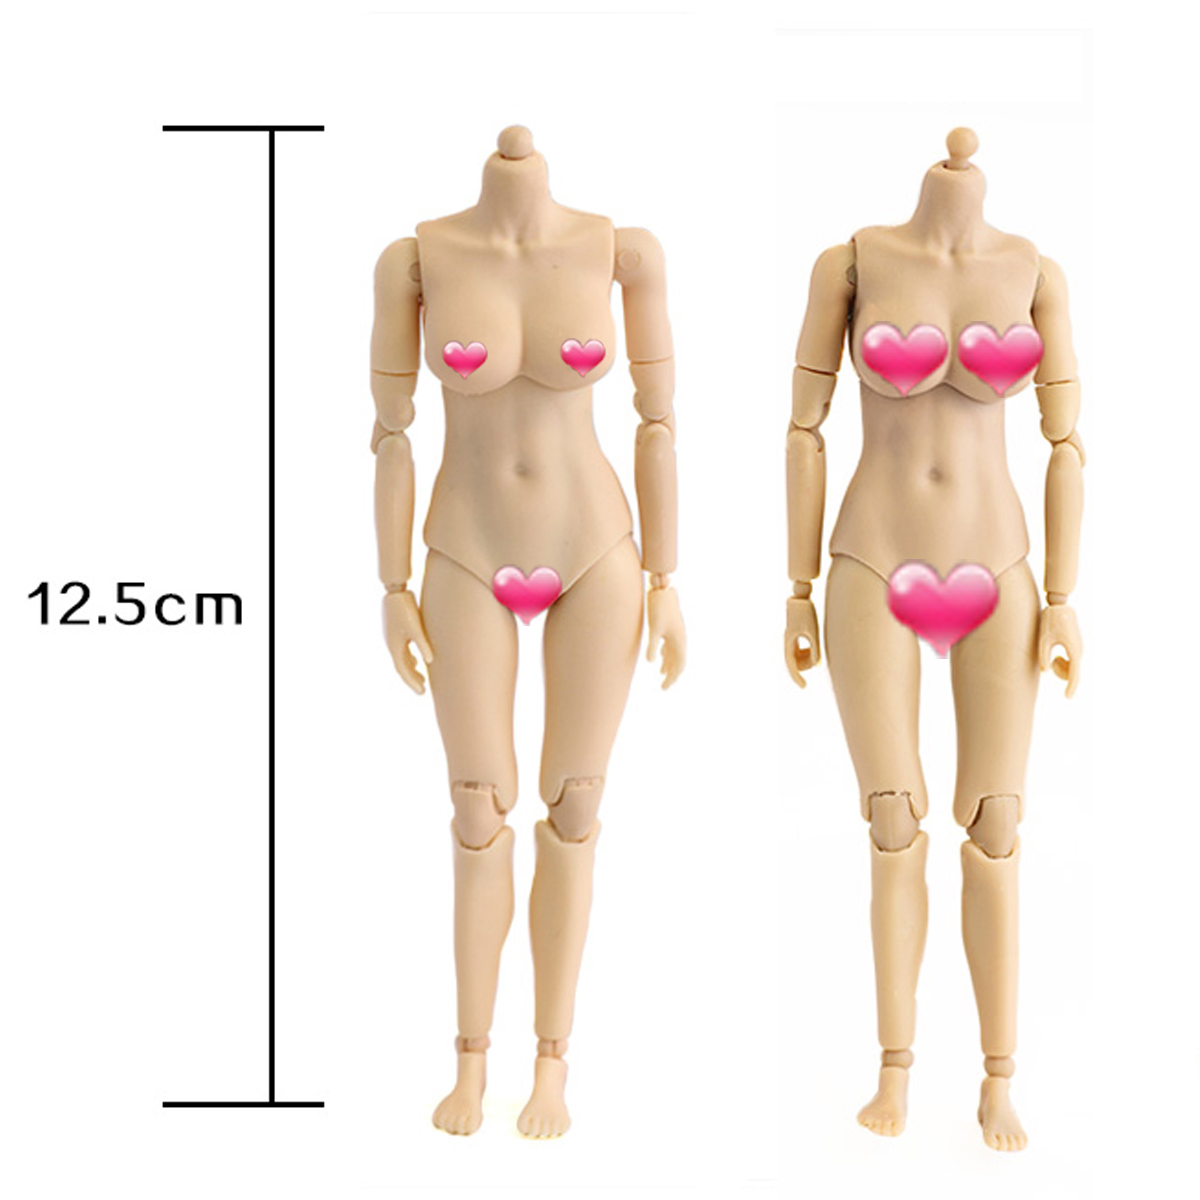 Heng Toys 1//12 HY001A Half-encapsuiated Feminine Body Whitening Complexion